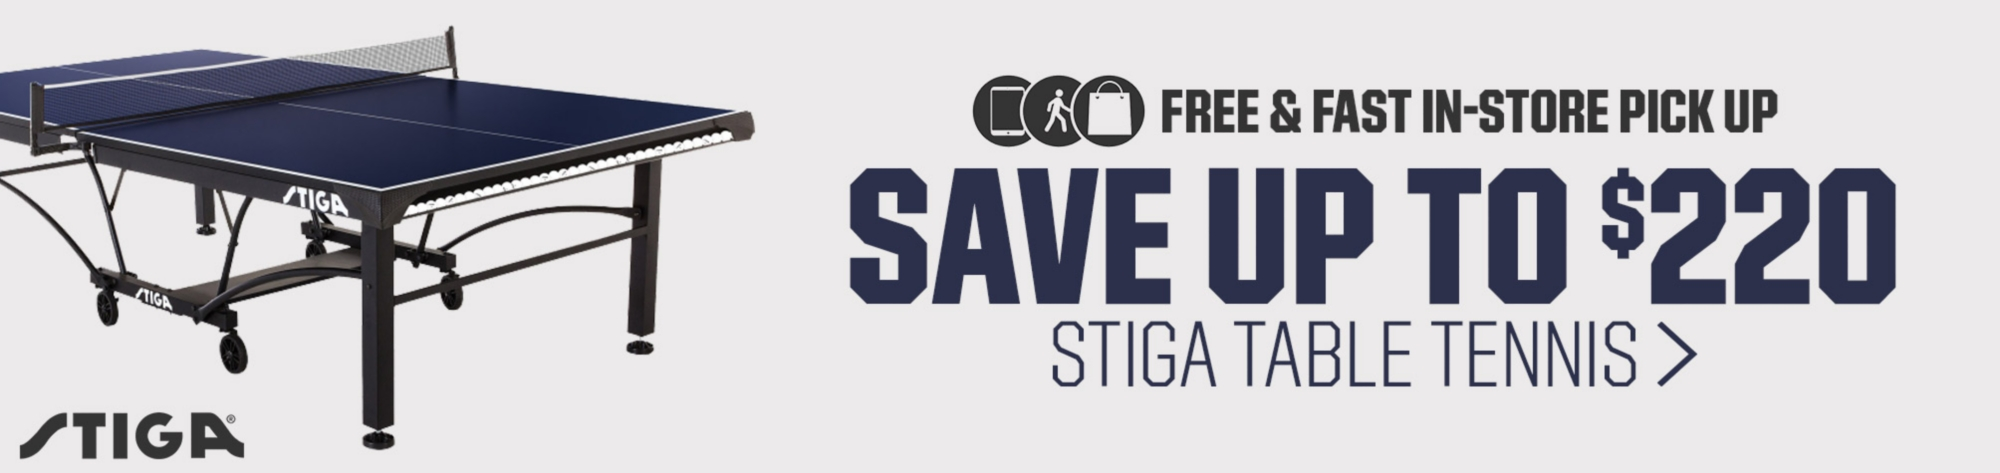 Free & Fast In-Store Pick Up + Save up to $220 on Stiga Table Tennis